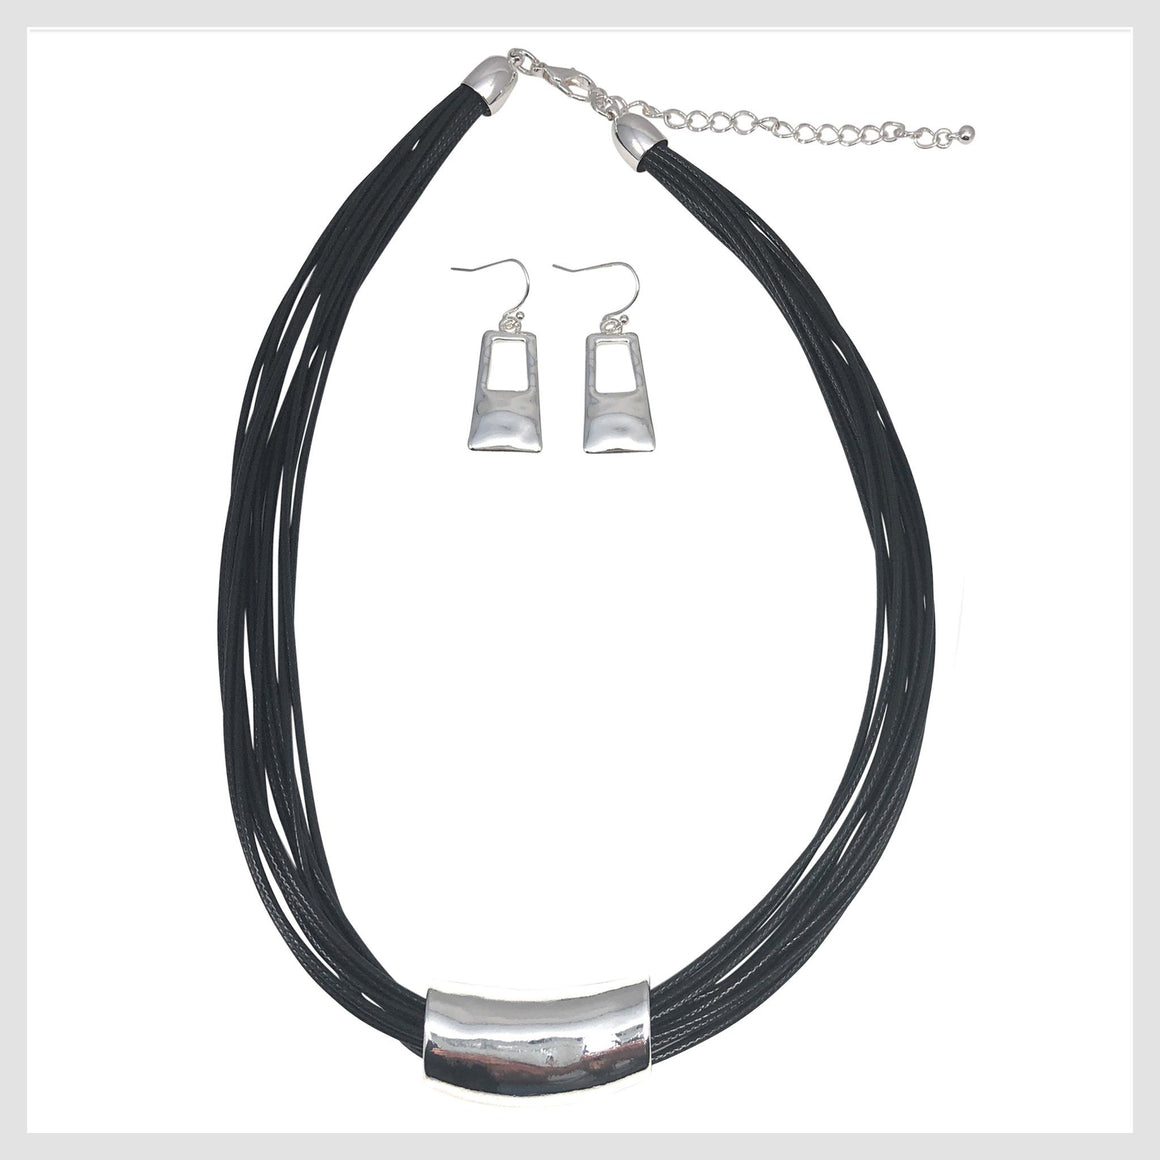 Pendant Necklace Black Cords and Unique Bar Design Matching Earrings